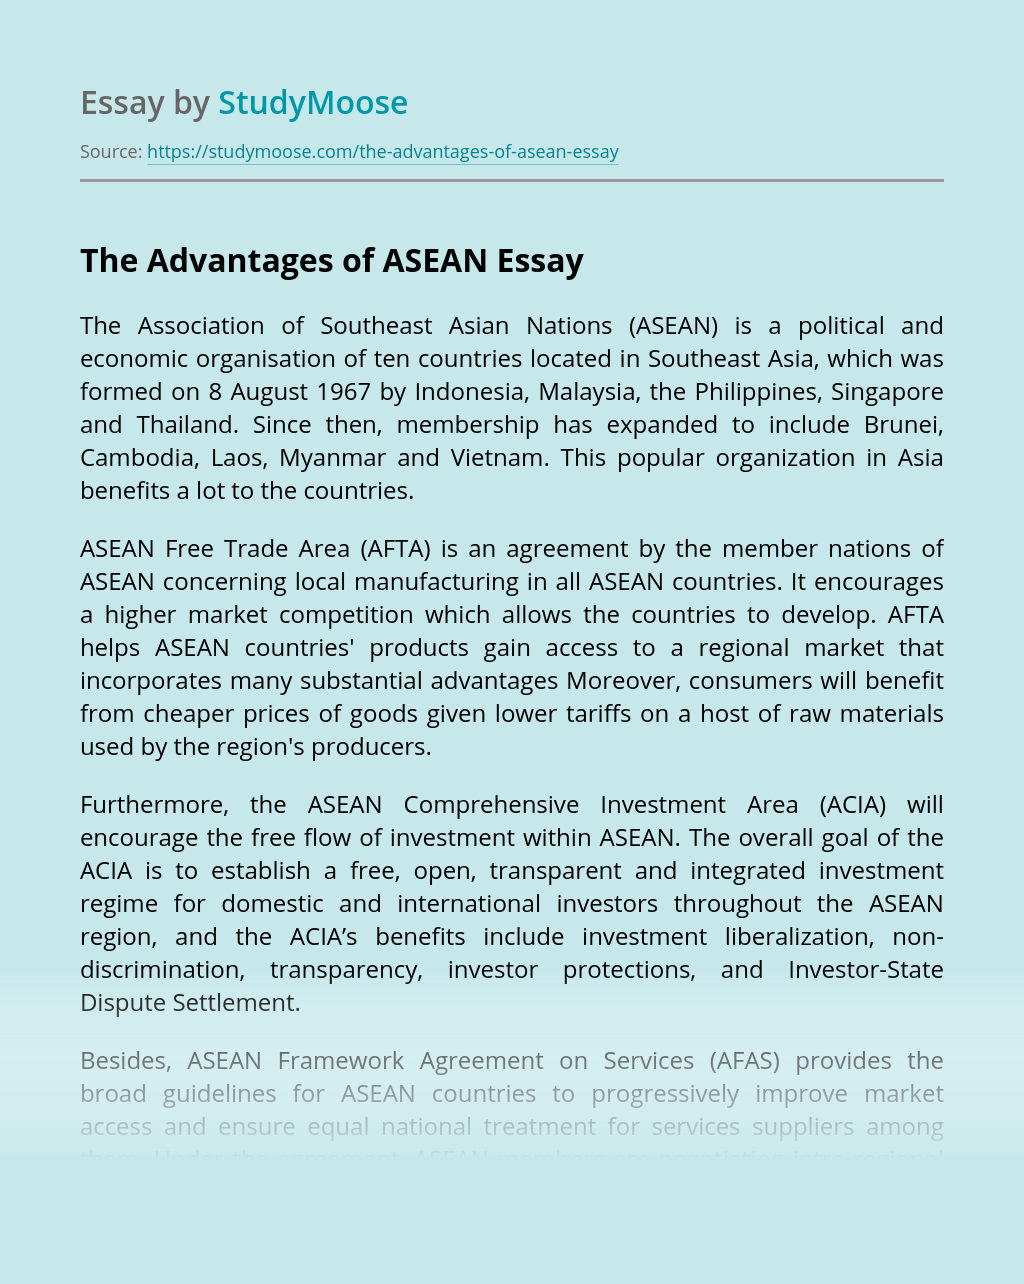 The Advantages of ASEAN